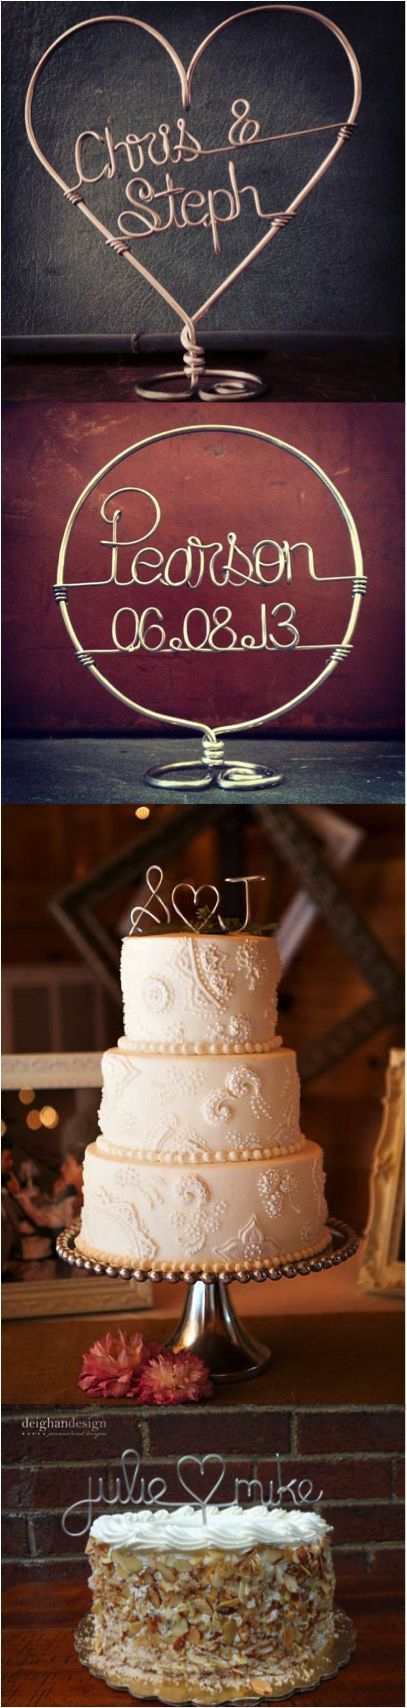 Handmade wire cake toppers personalized with your name, initials, or wedding date. Made on Hatch.co